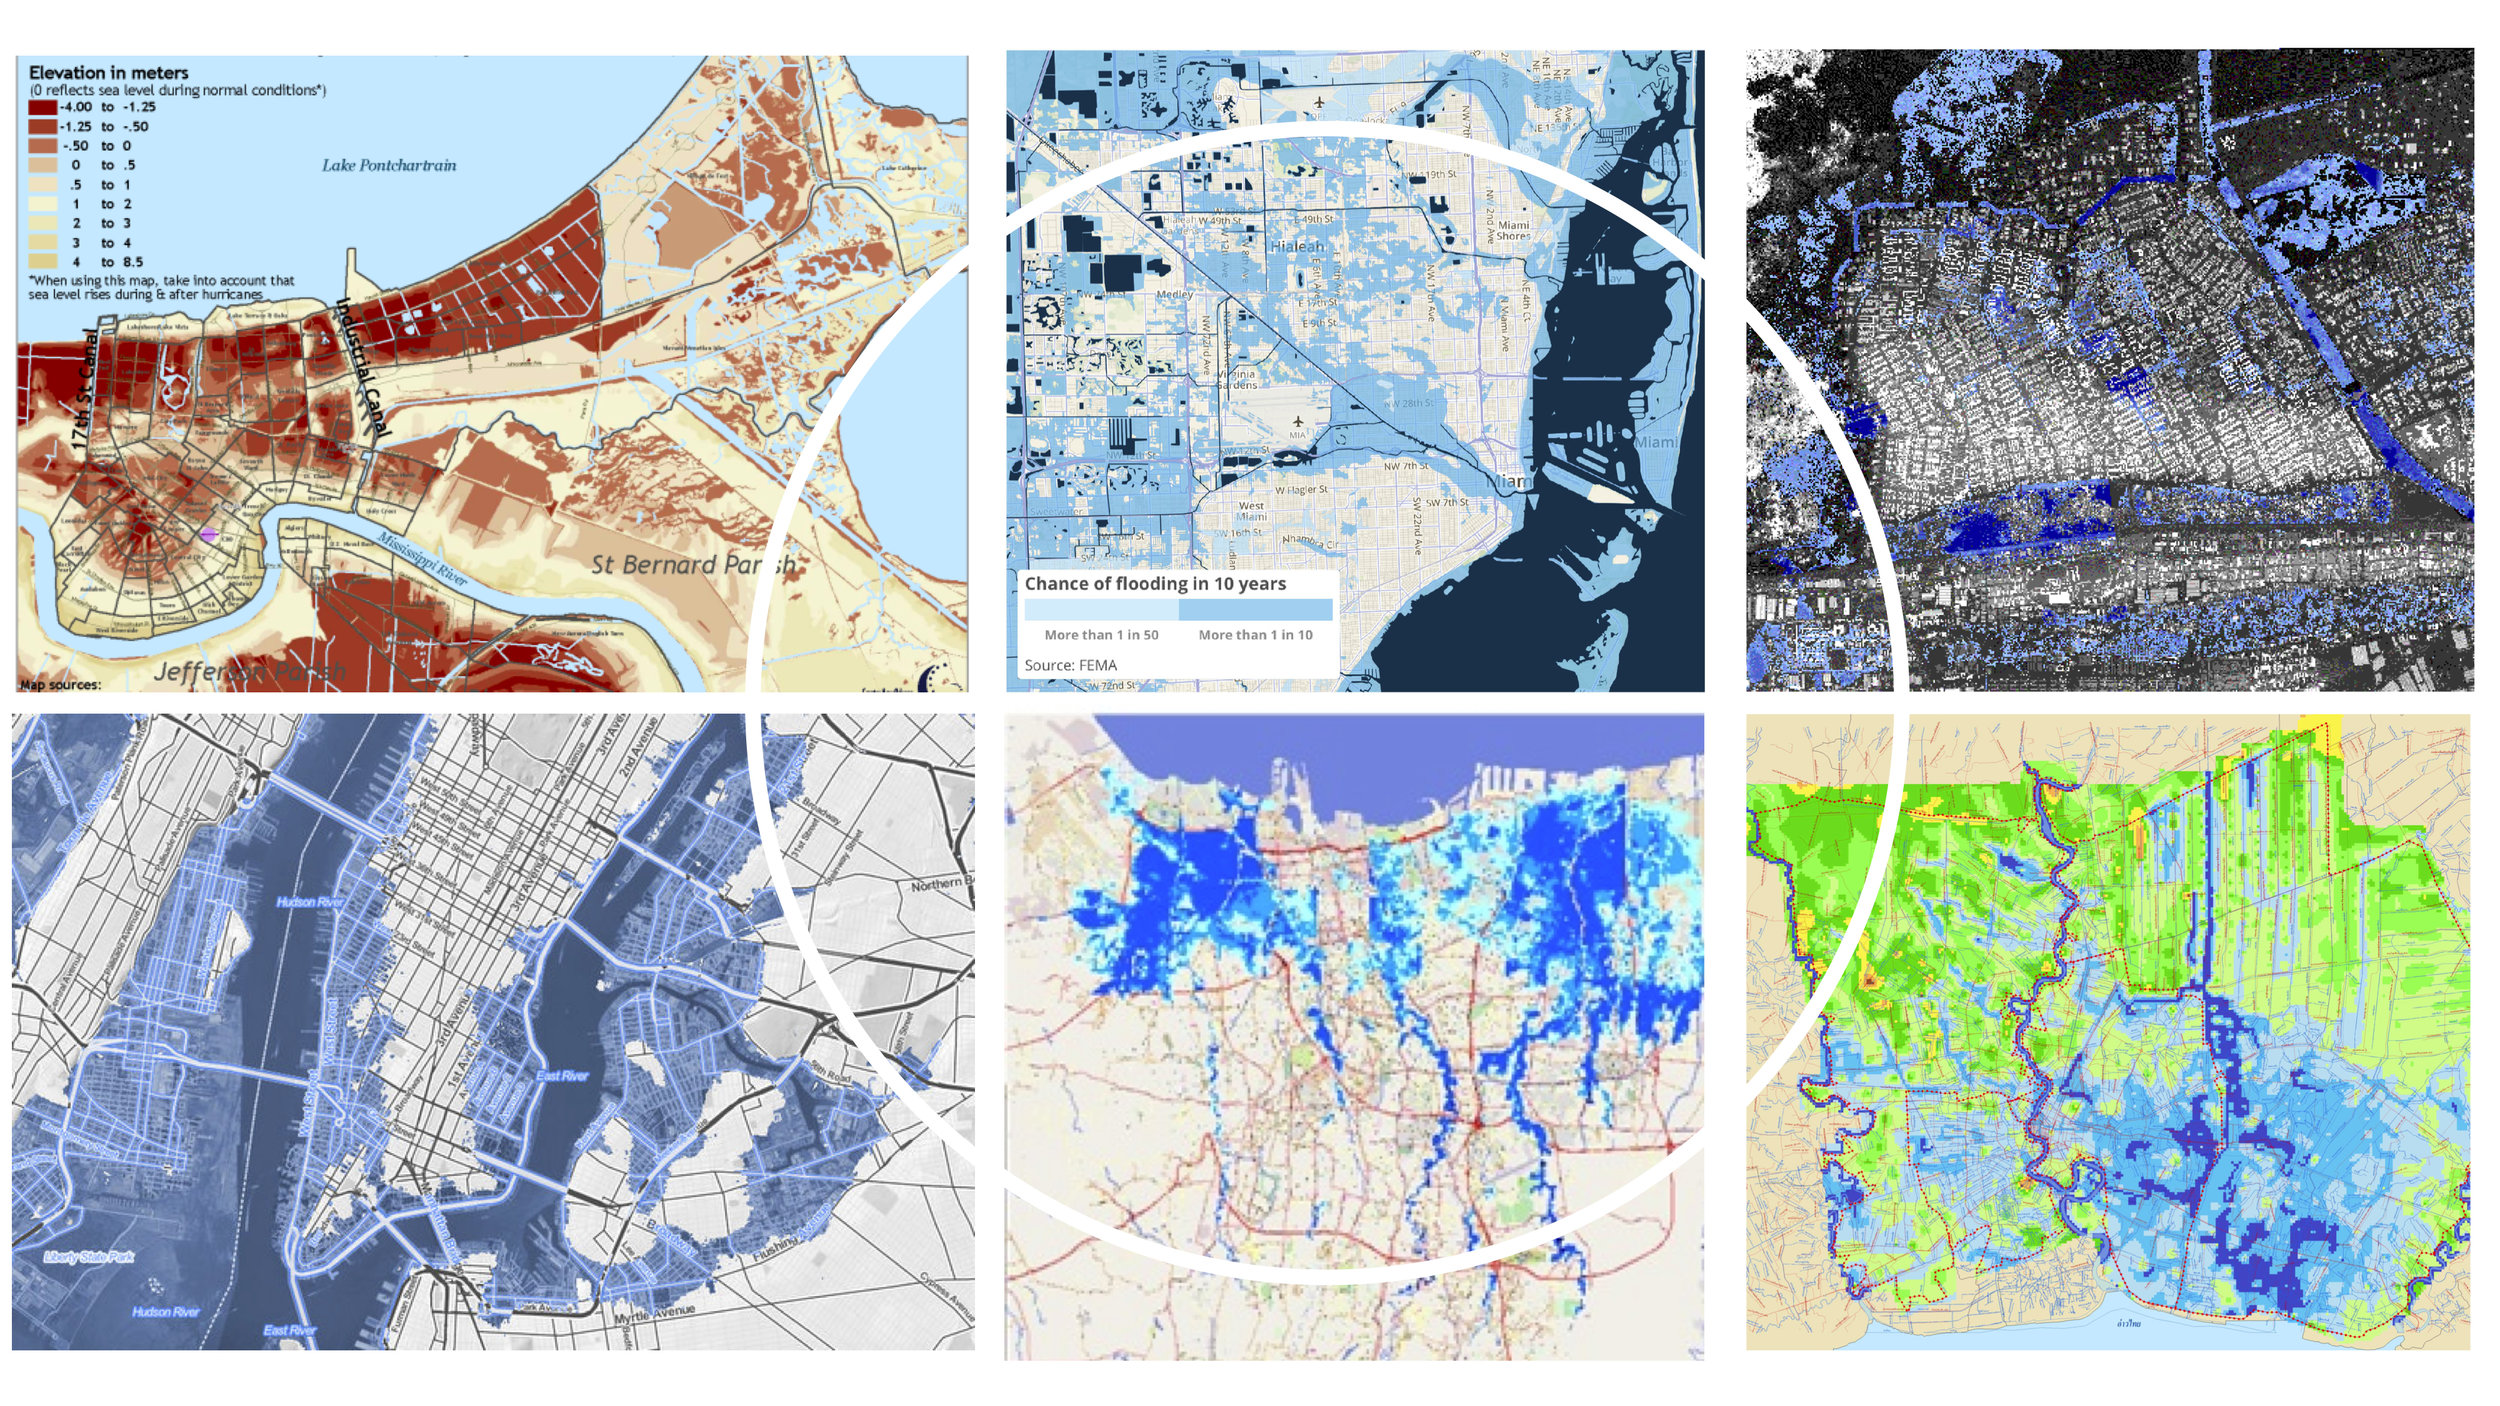 Flood maps showing the similarities between cities in flood zones